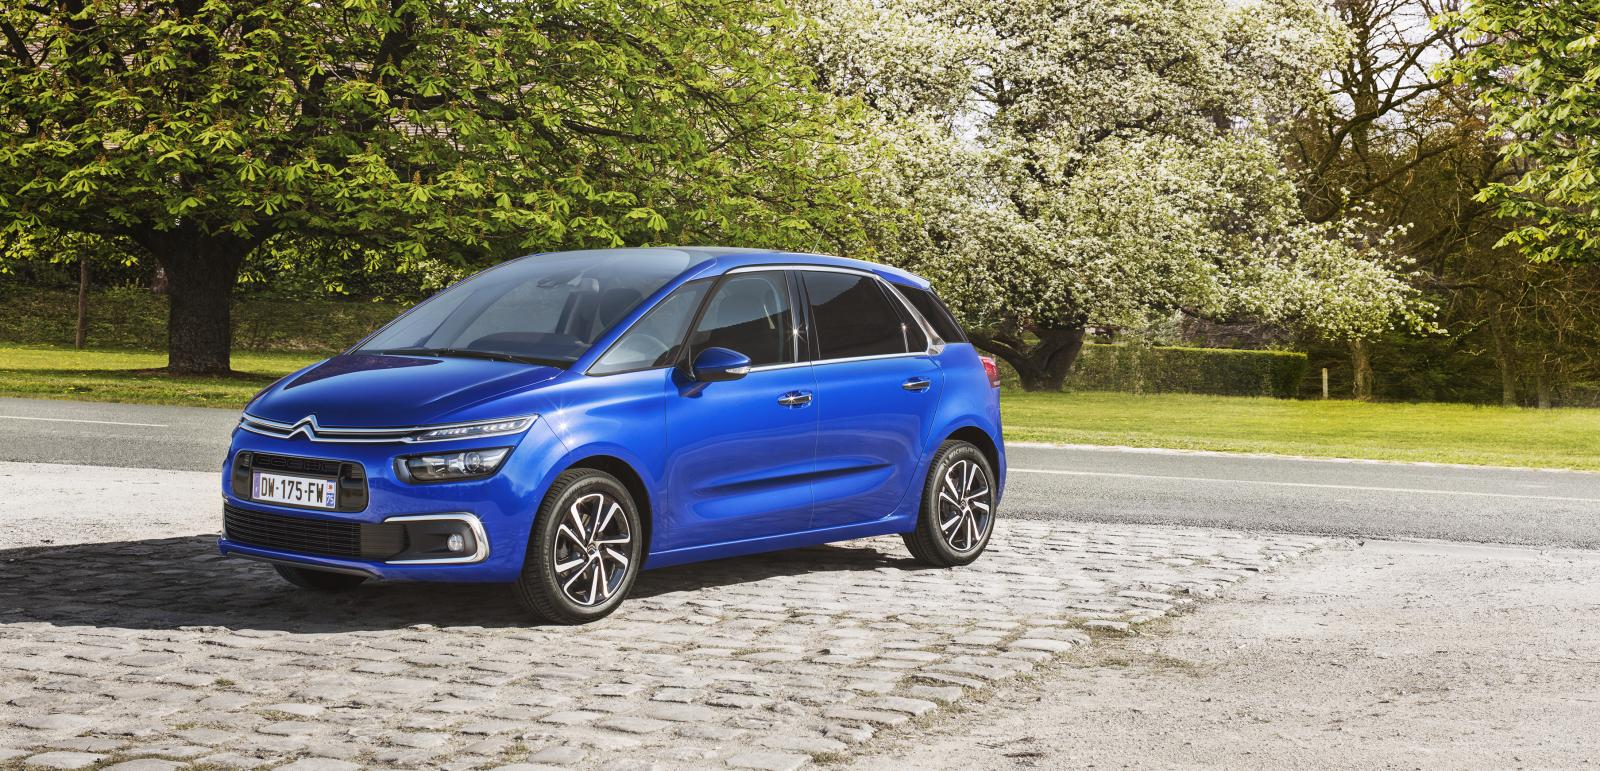 2016. a C4 Picasso Shine Lazuli Blue ¾ eestvaade